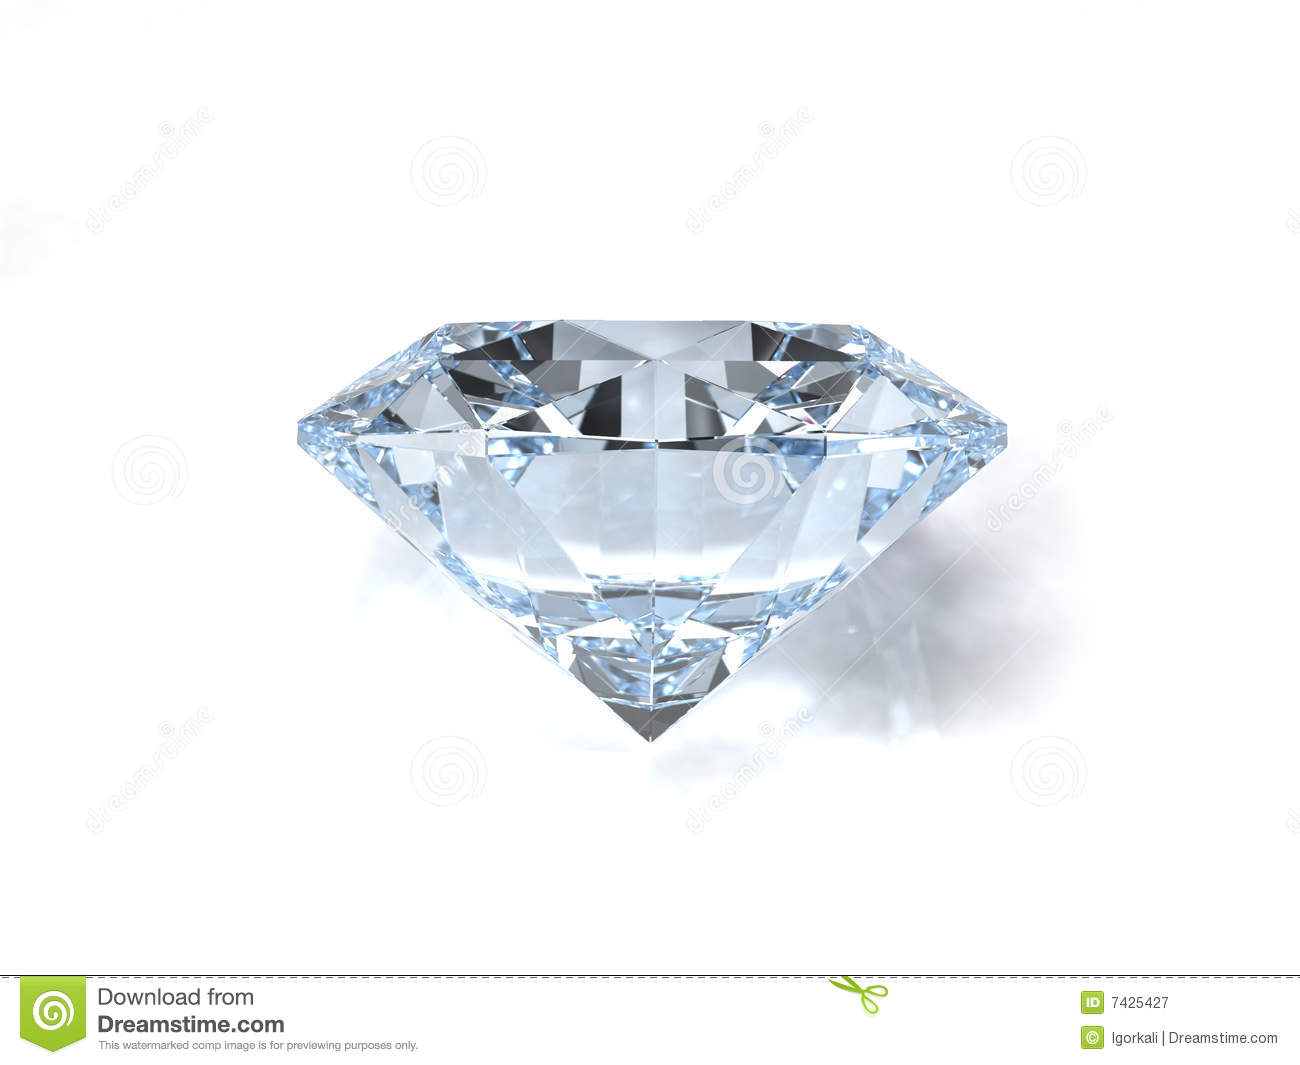 lesotho unearths letseng diamond a diamonds tweetlz carat bdi from mine gem